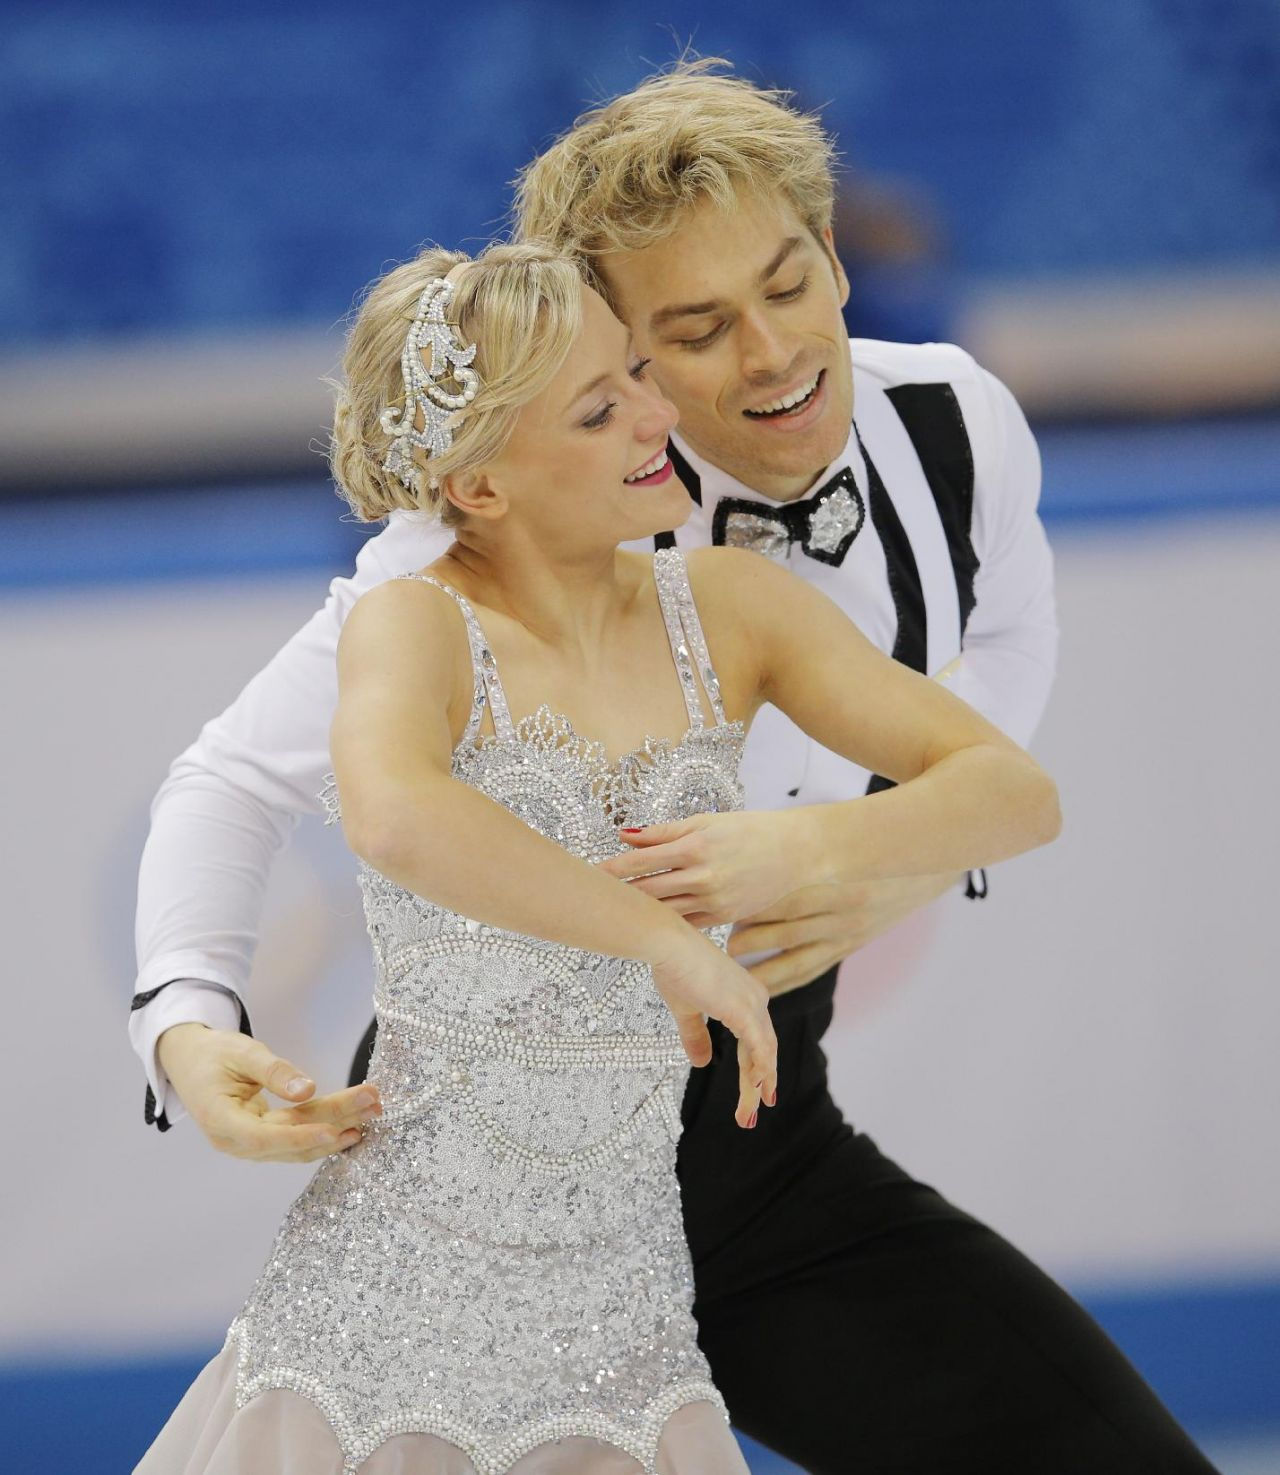 Penny Coomes - Sochi 2014 Winter Olympics - Team Ice Dance (Short Dance)